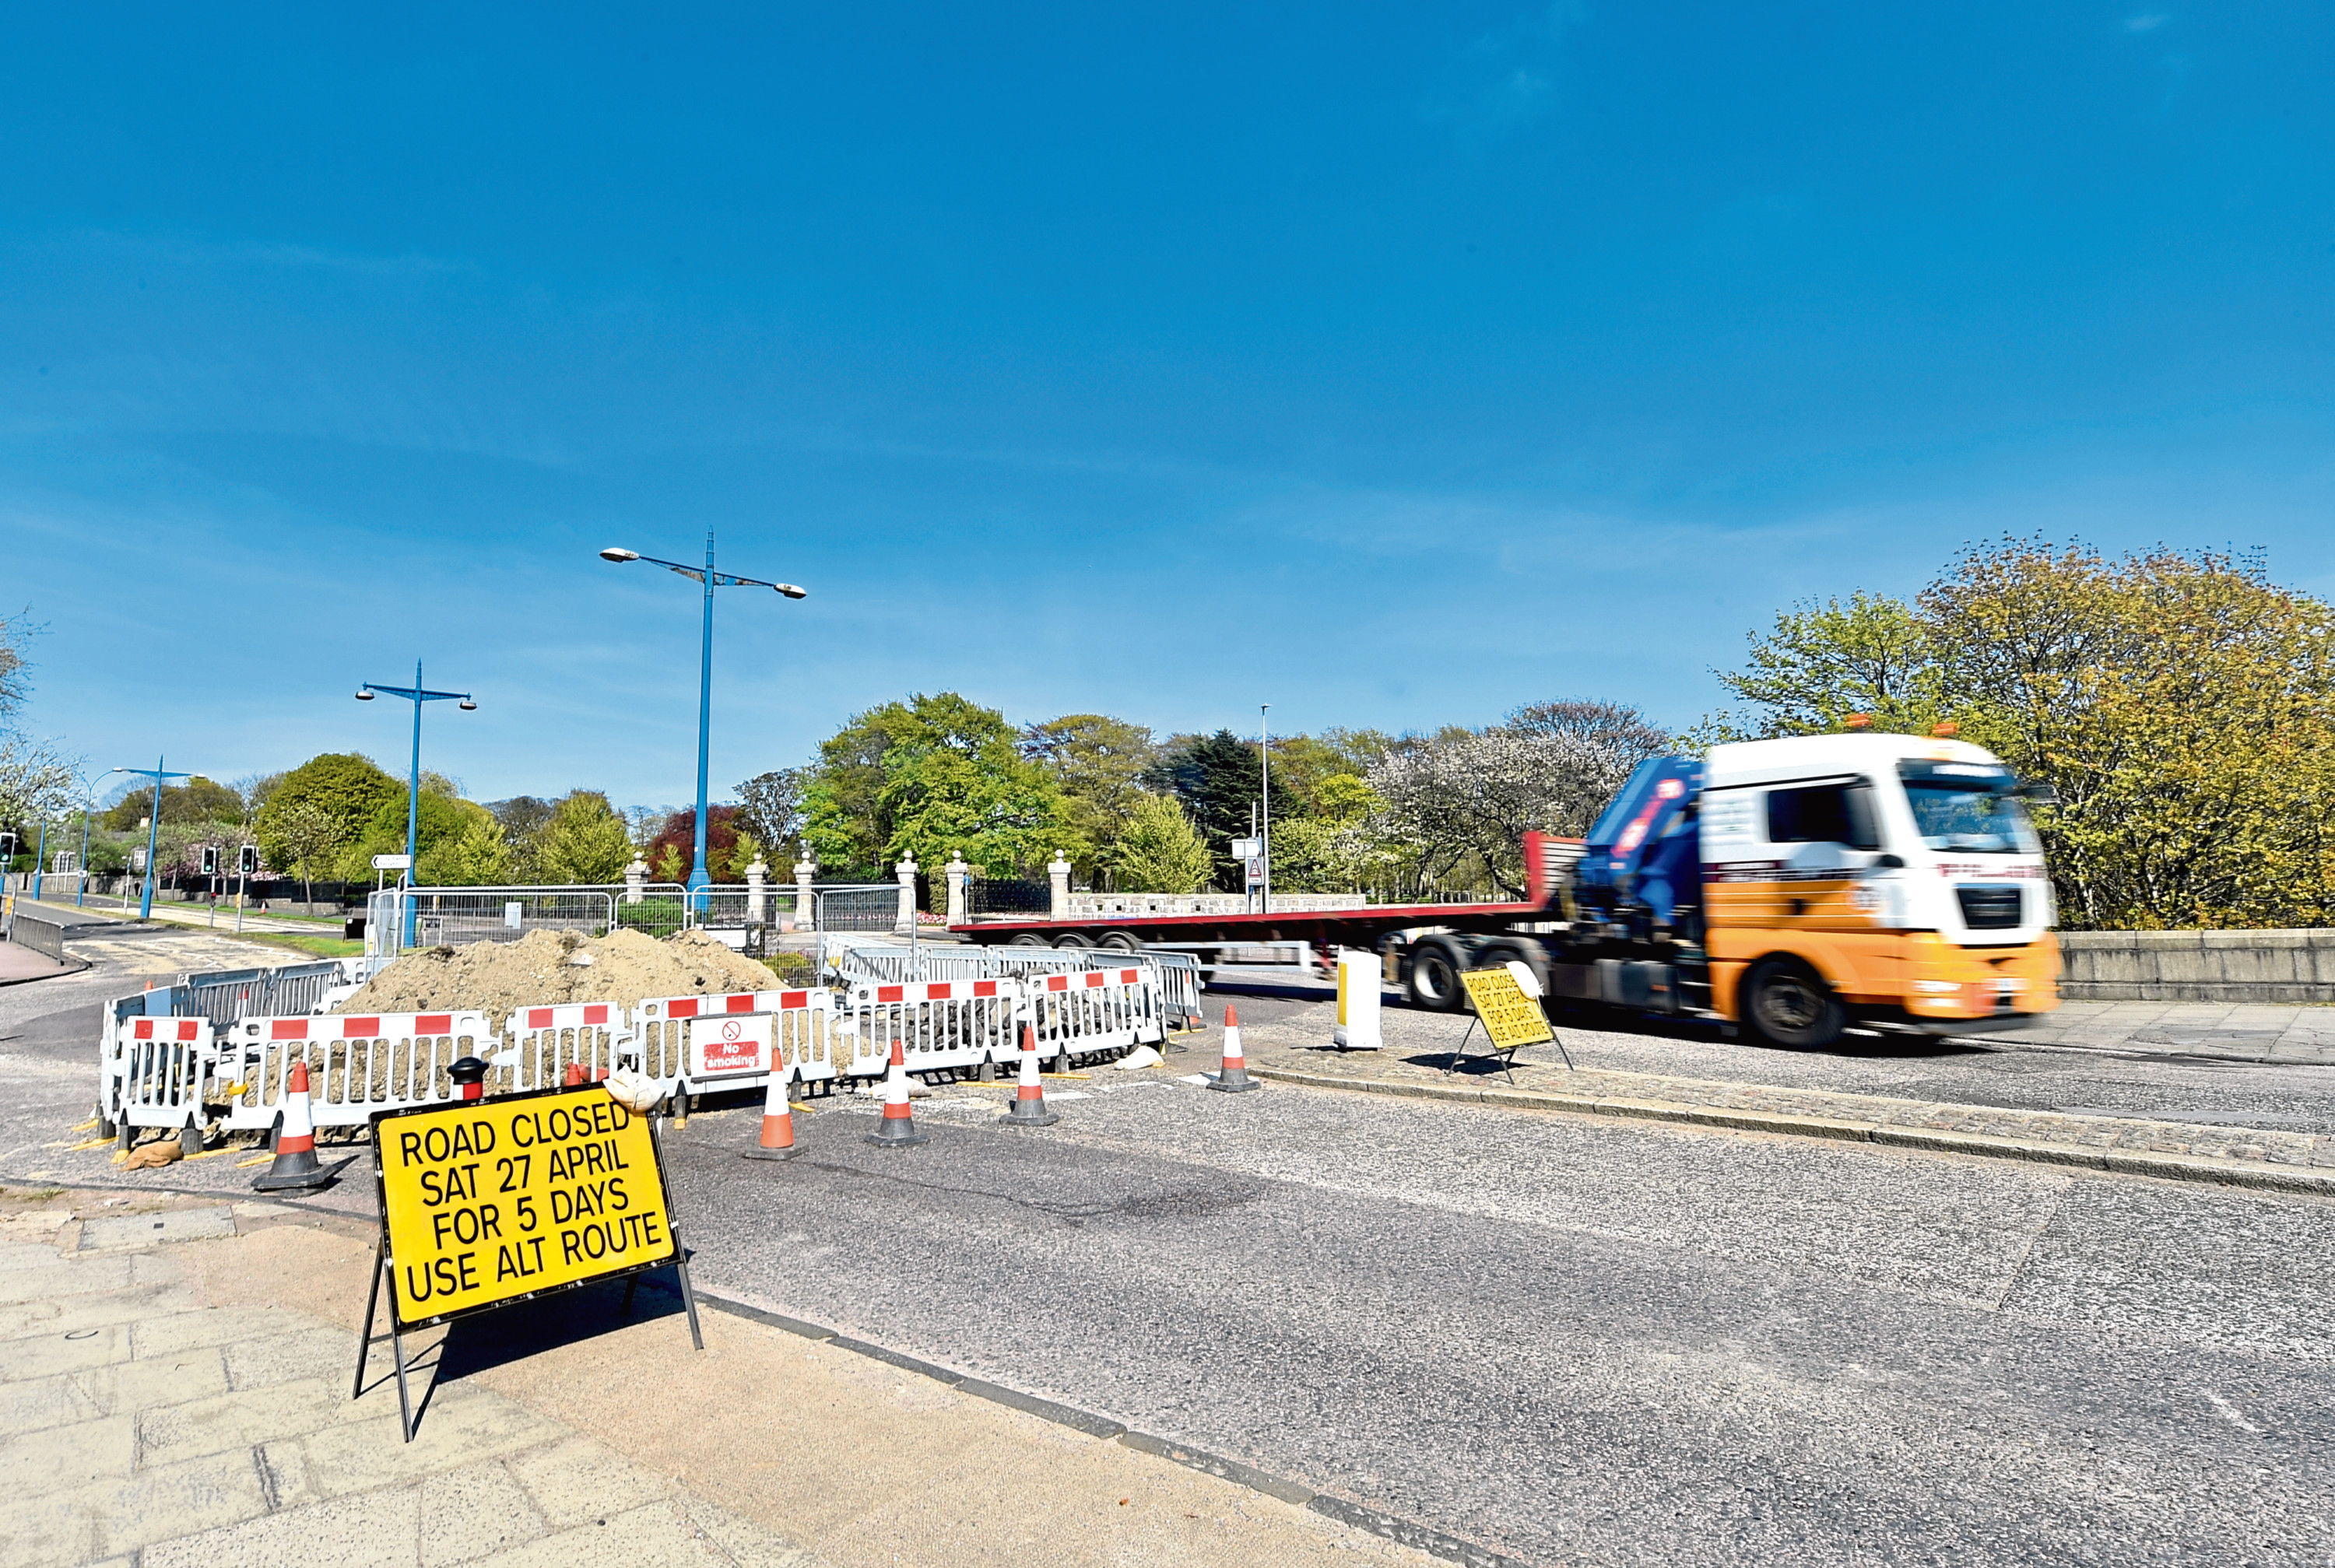 Works will continue for another week on the King George VI bridge